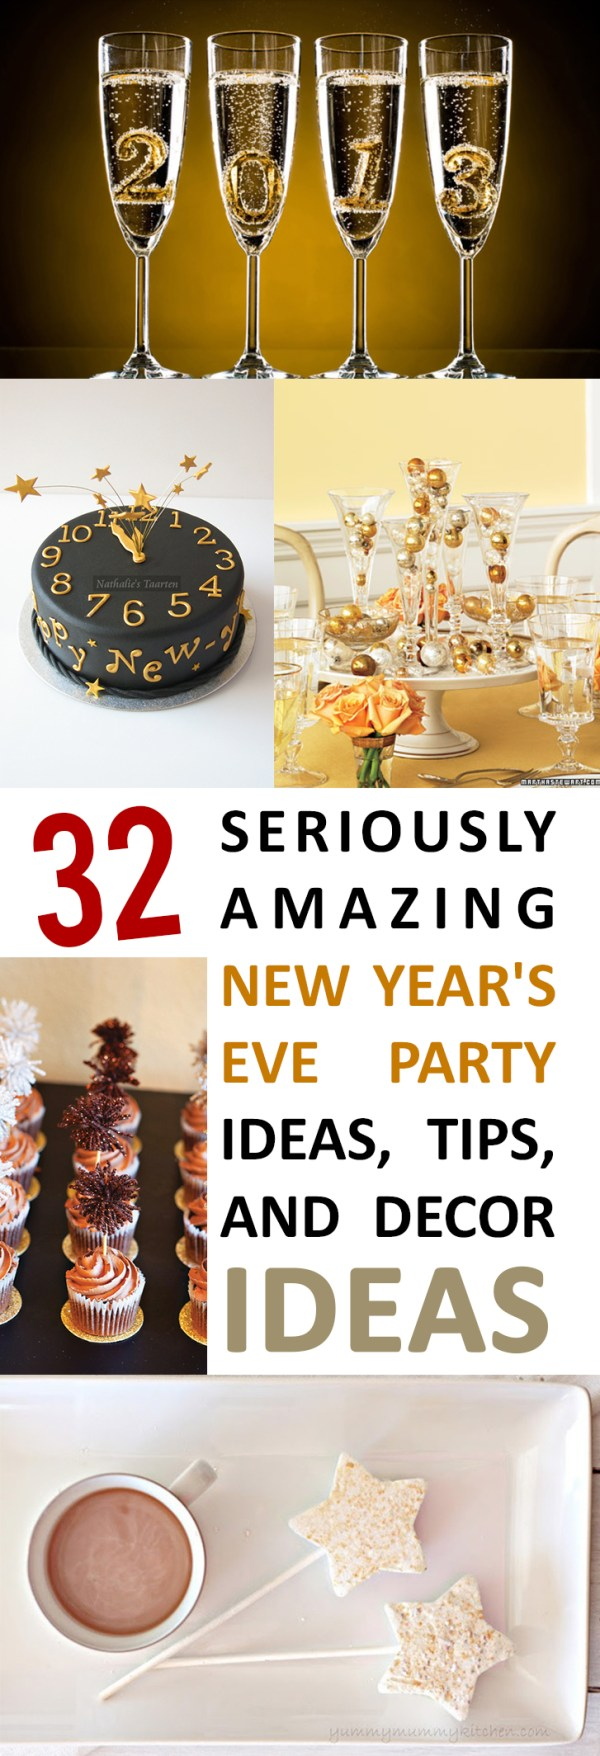 32 Seriously Amazing New Year's Eve Party Ideas, Tips and ...